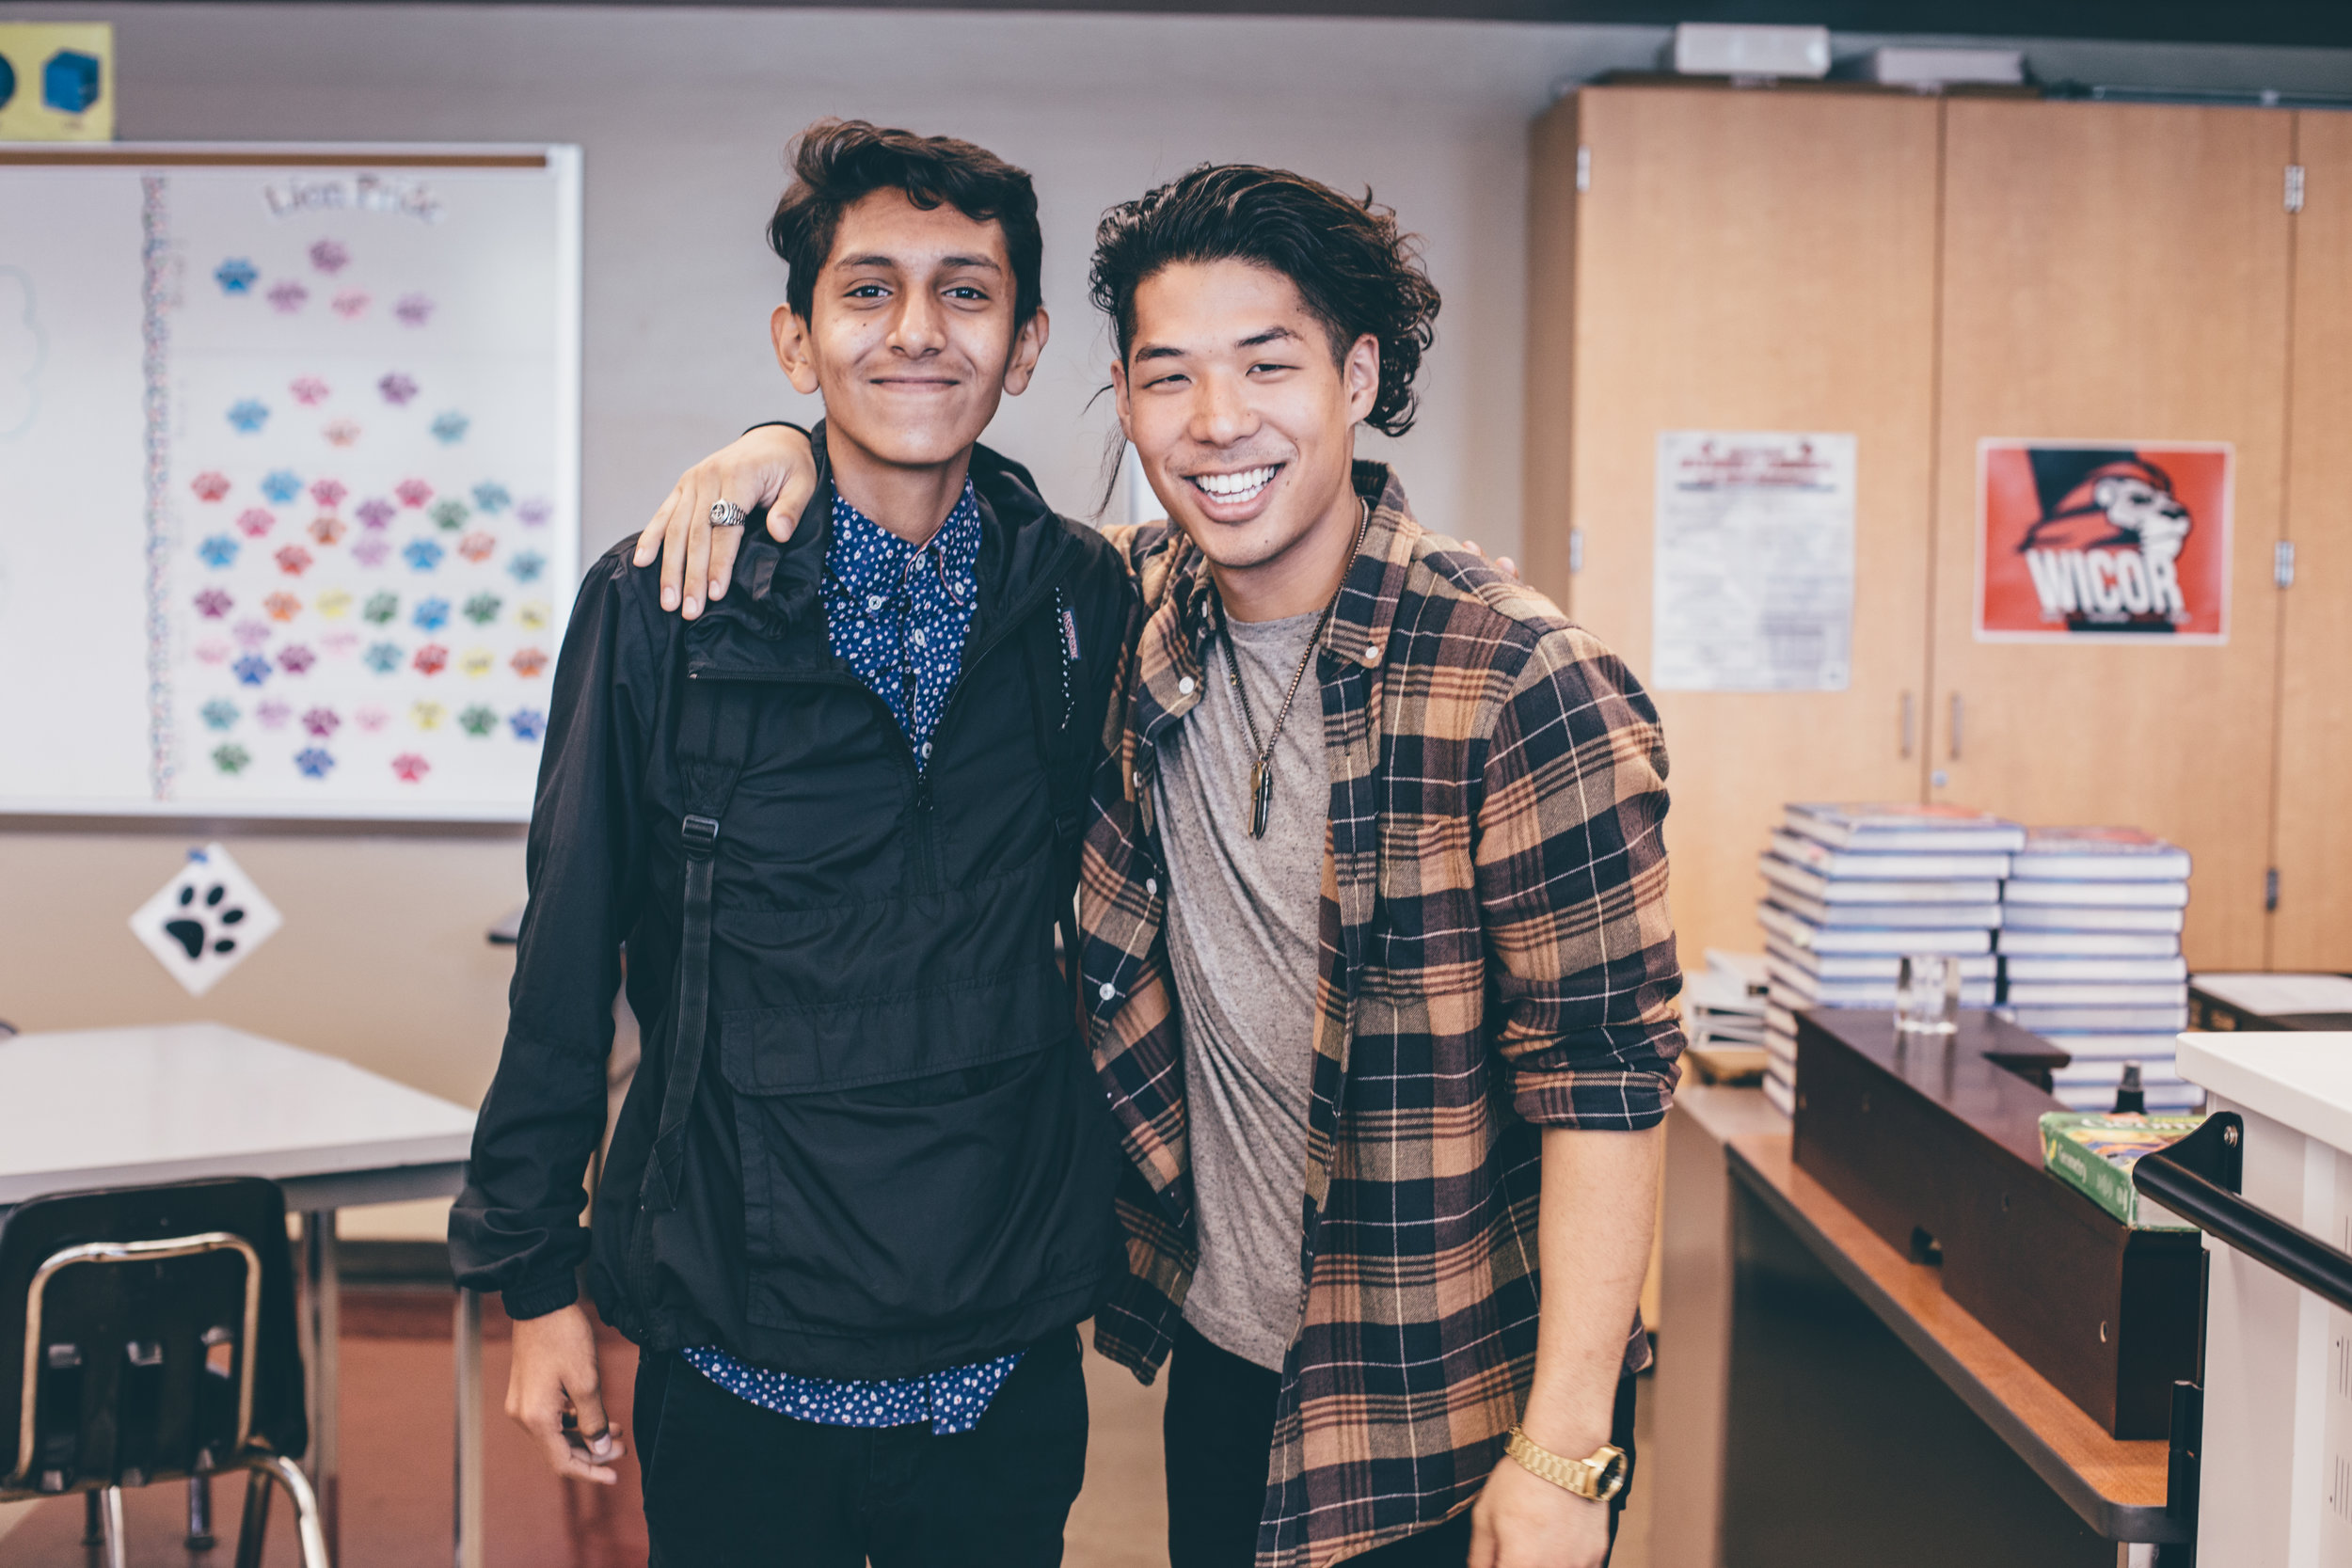 Pictured: Pastor Josh and Eros Cortez (sophomore) who us into Westminster High School to share at the Risen Bible Club